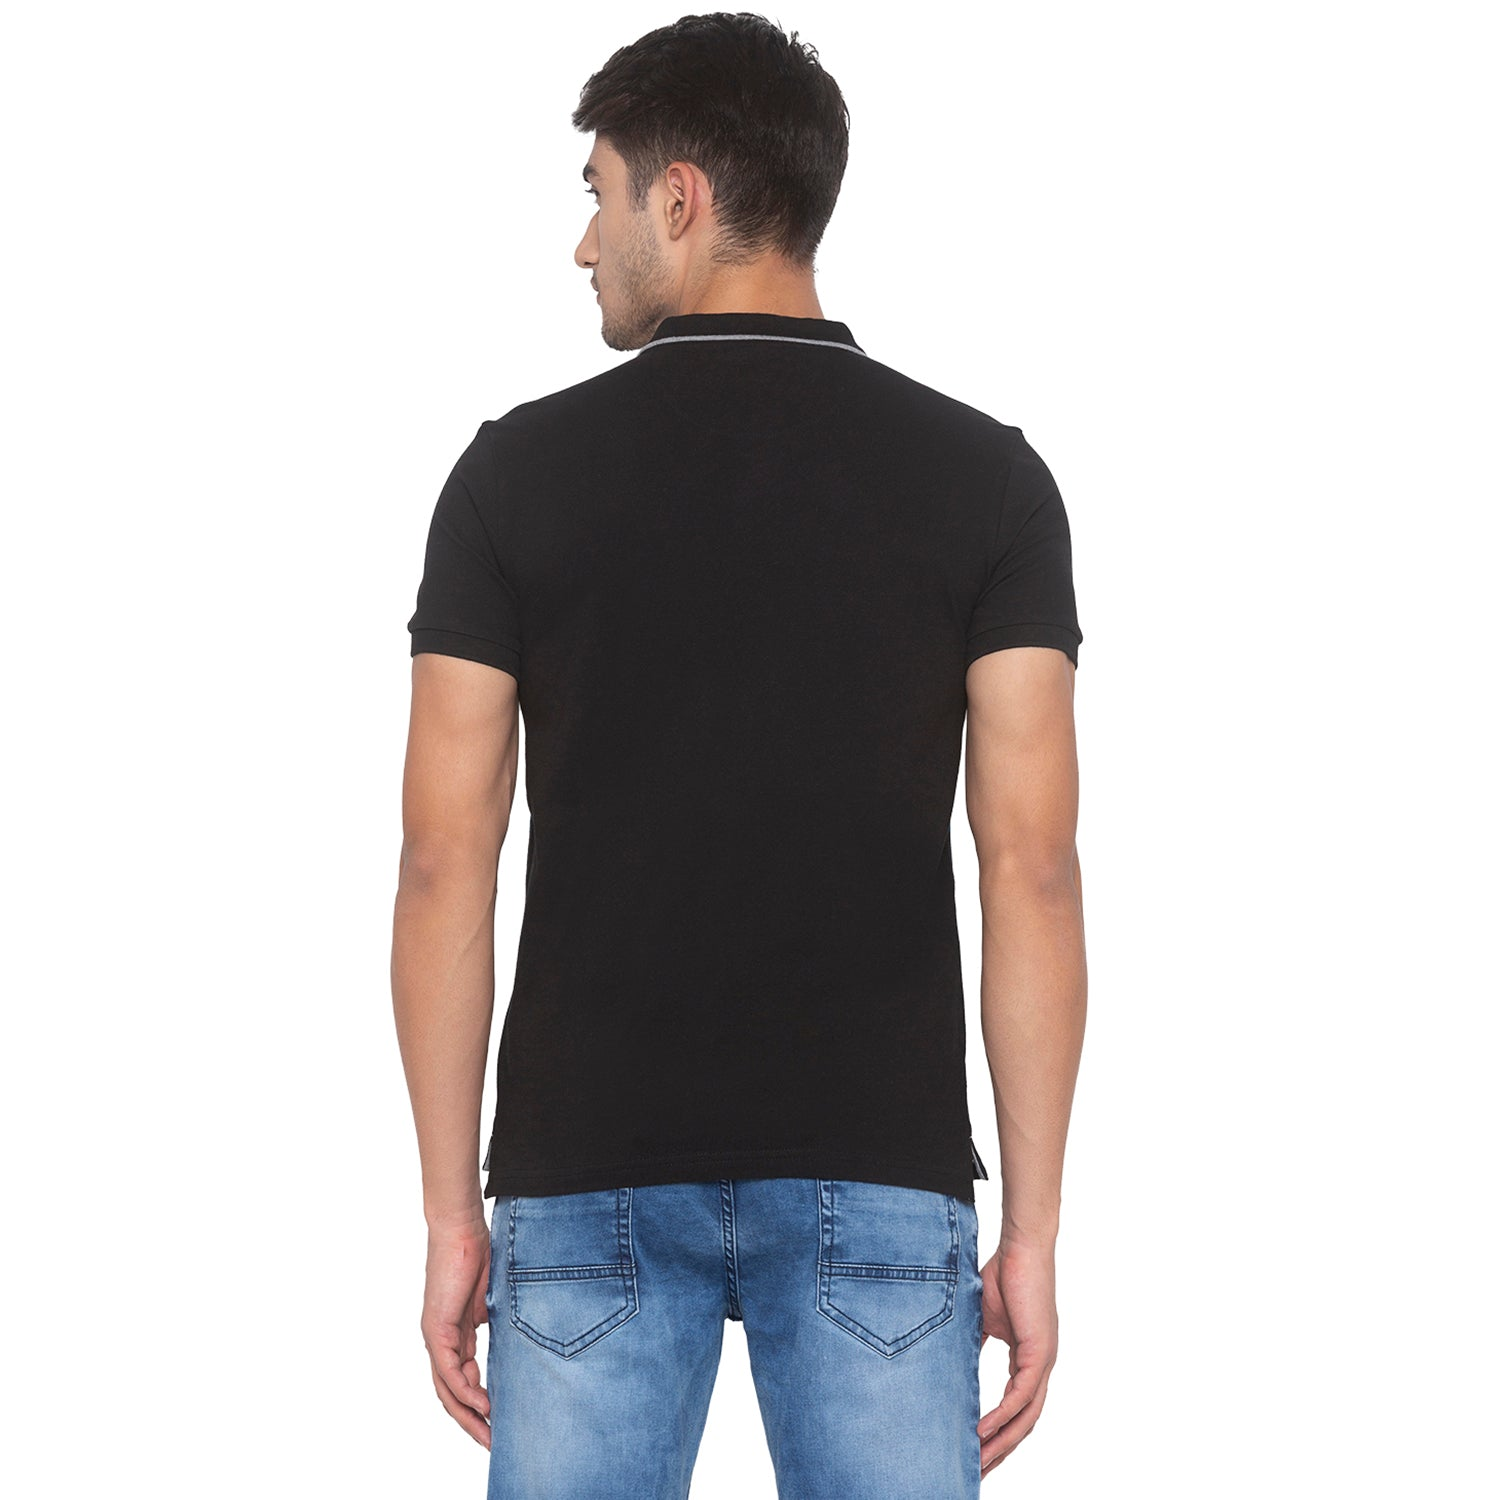 Black Printed T-Shirt-3